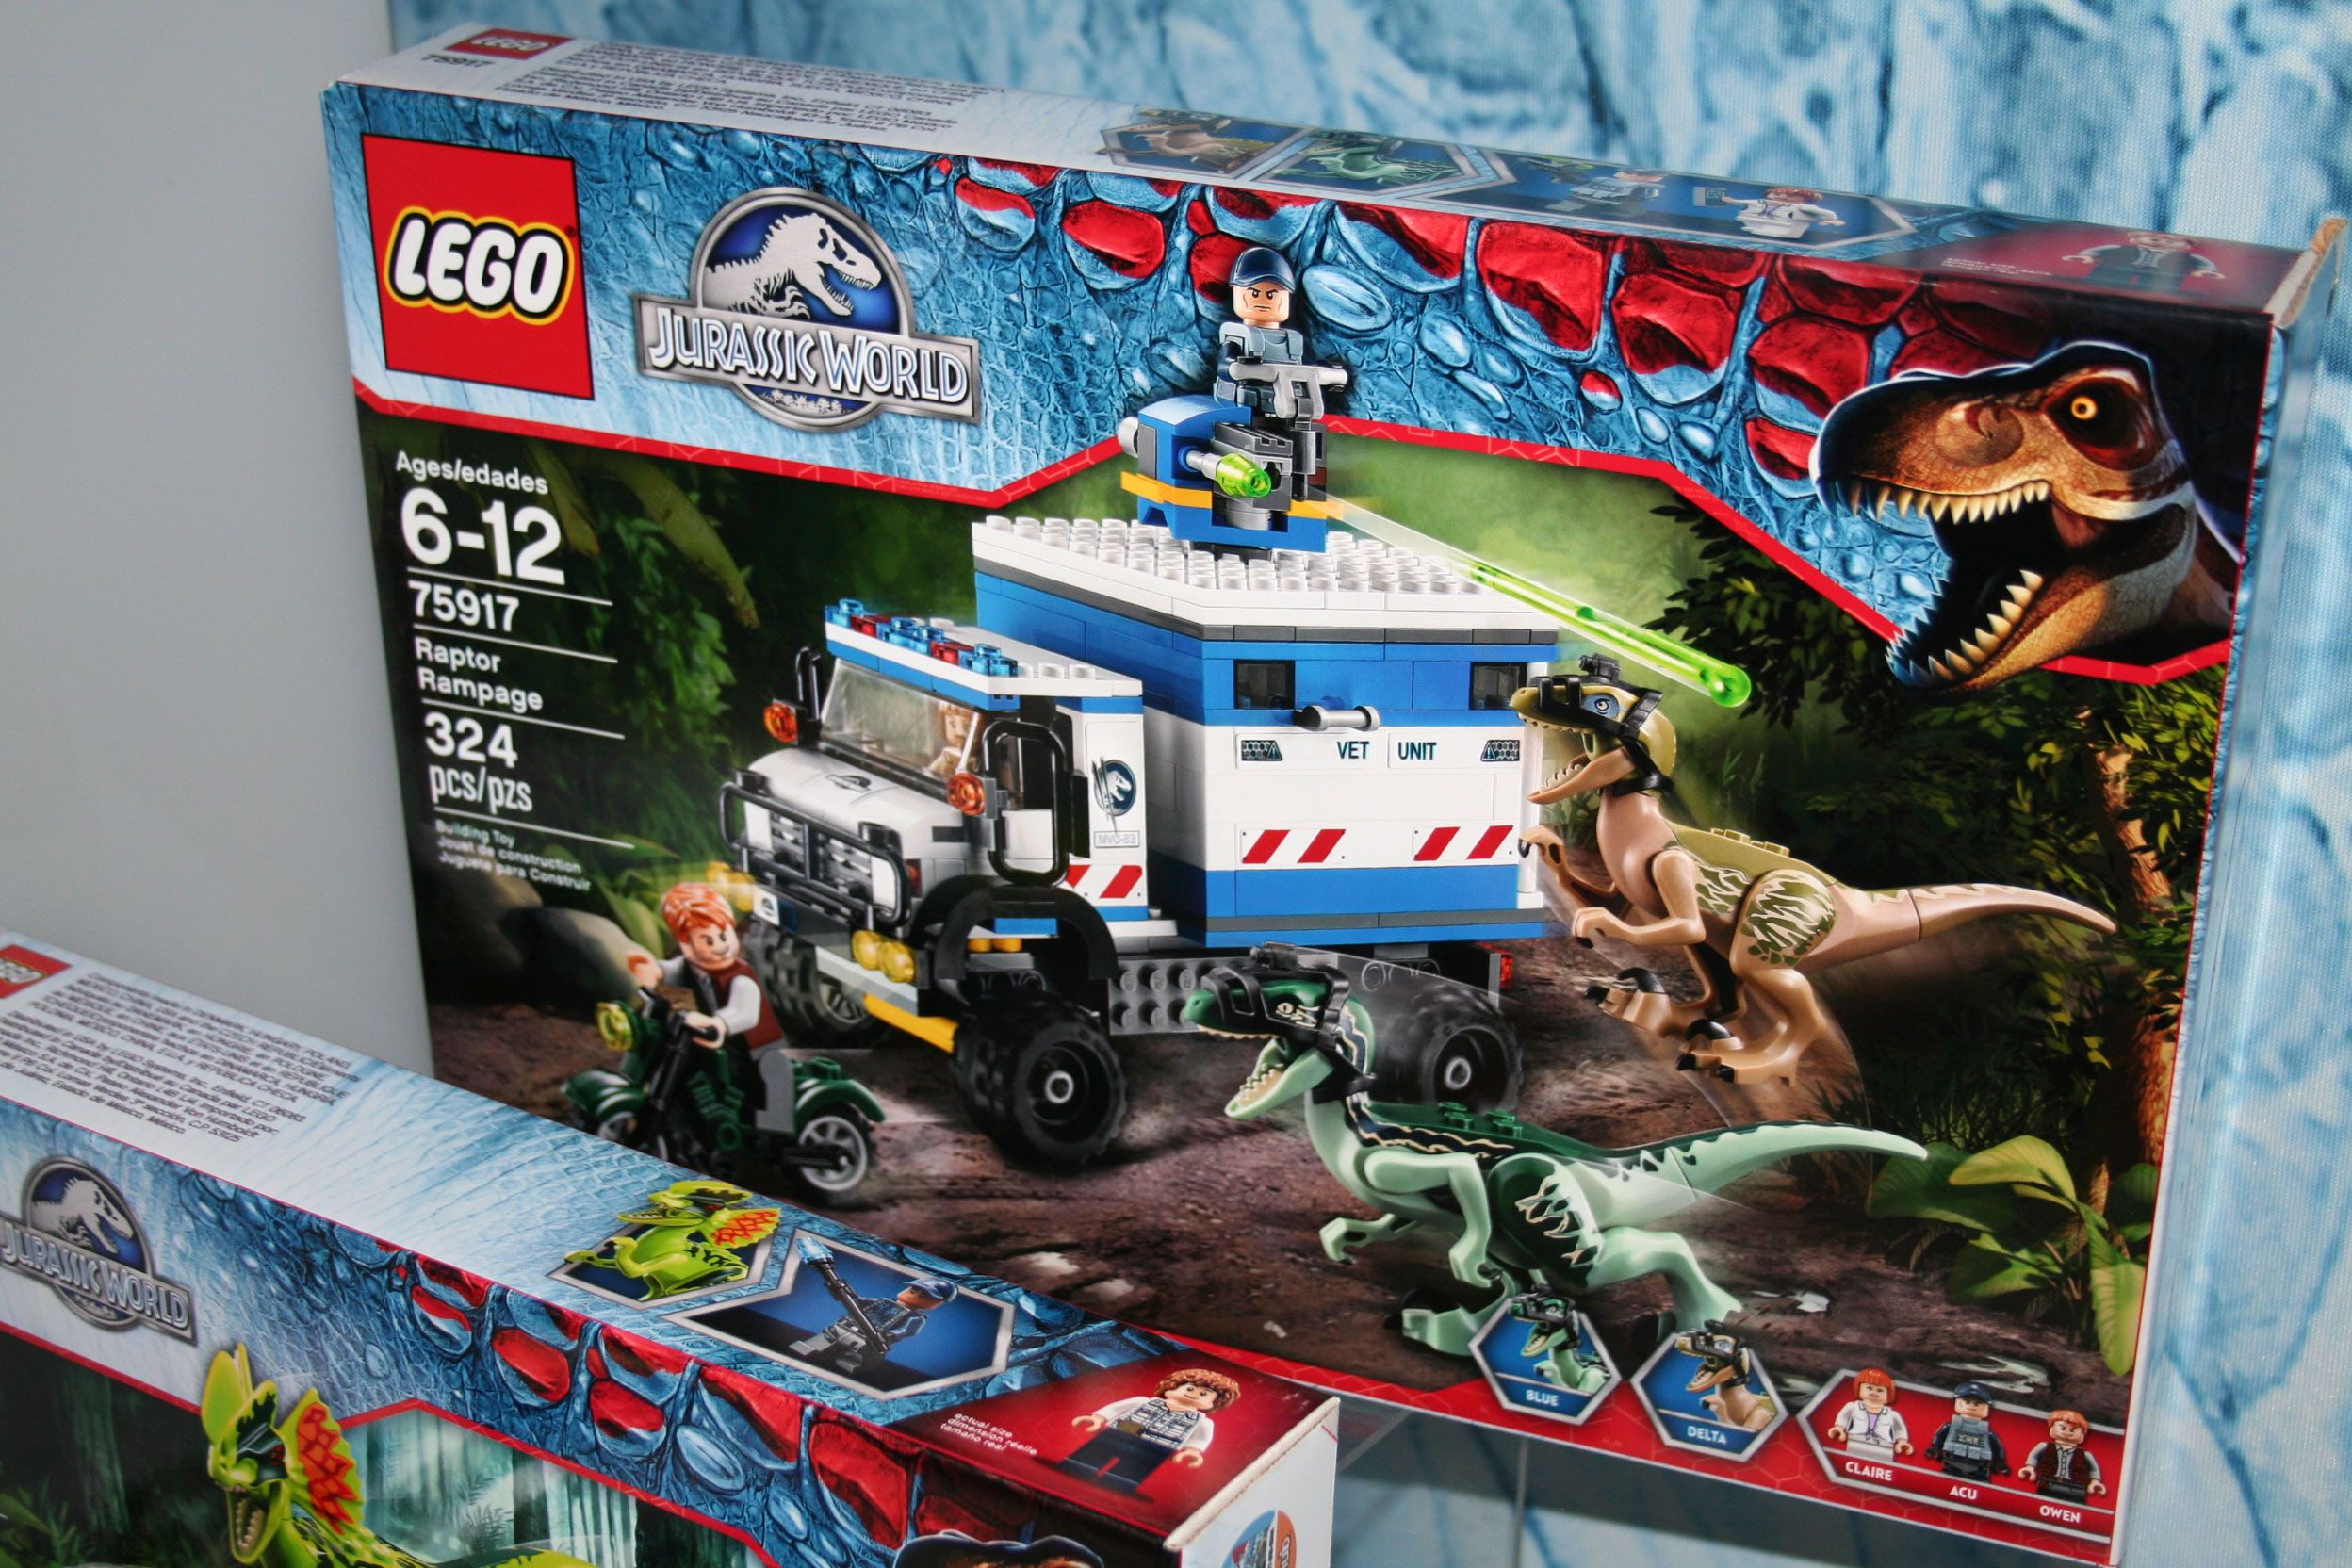 2015 Hottest Holiday Toys LEGO Jurassic World Review